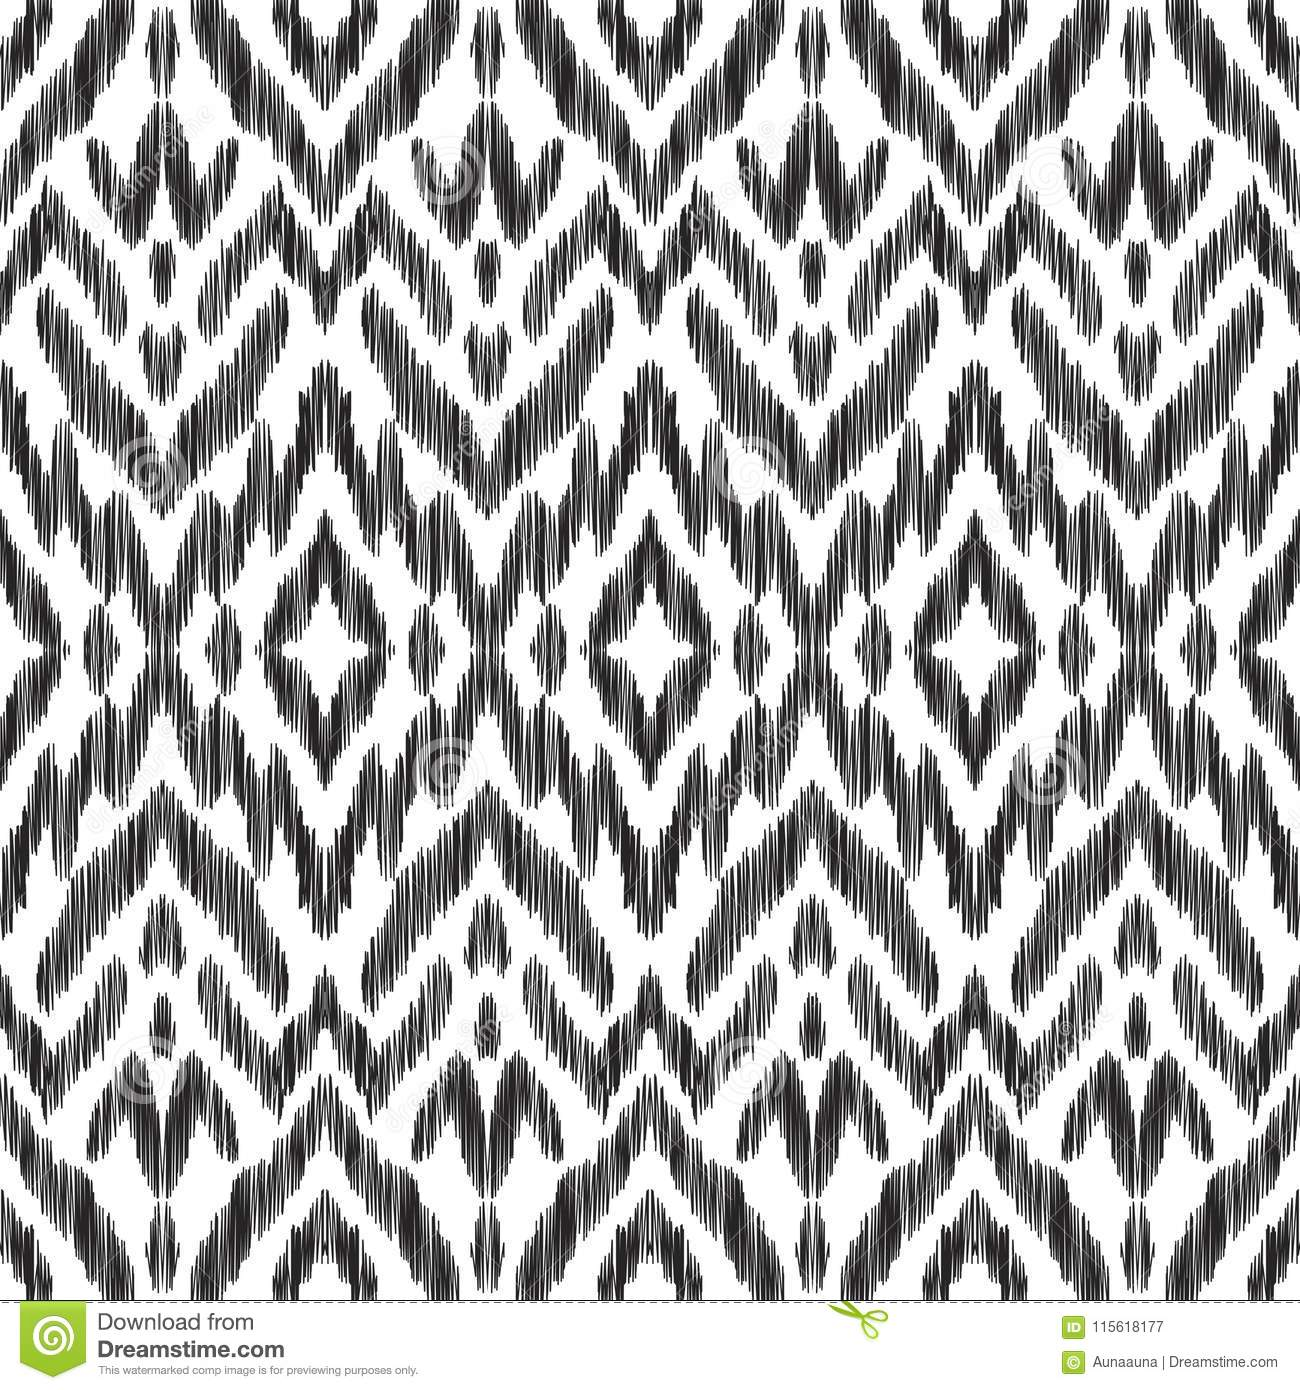 Ikat Seamless Pattern Surface Design For Print Fabric Wallpaper Gift Wrap Texture Tribal Vector Illustration Black And White Background